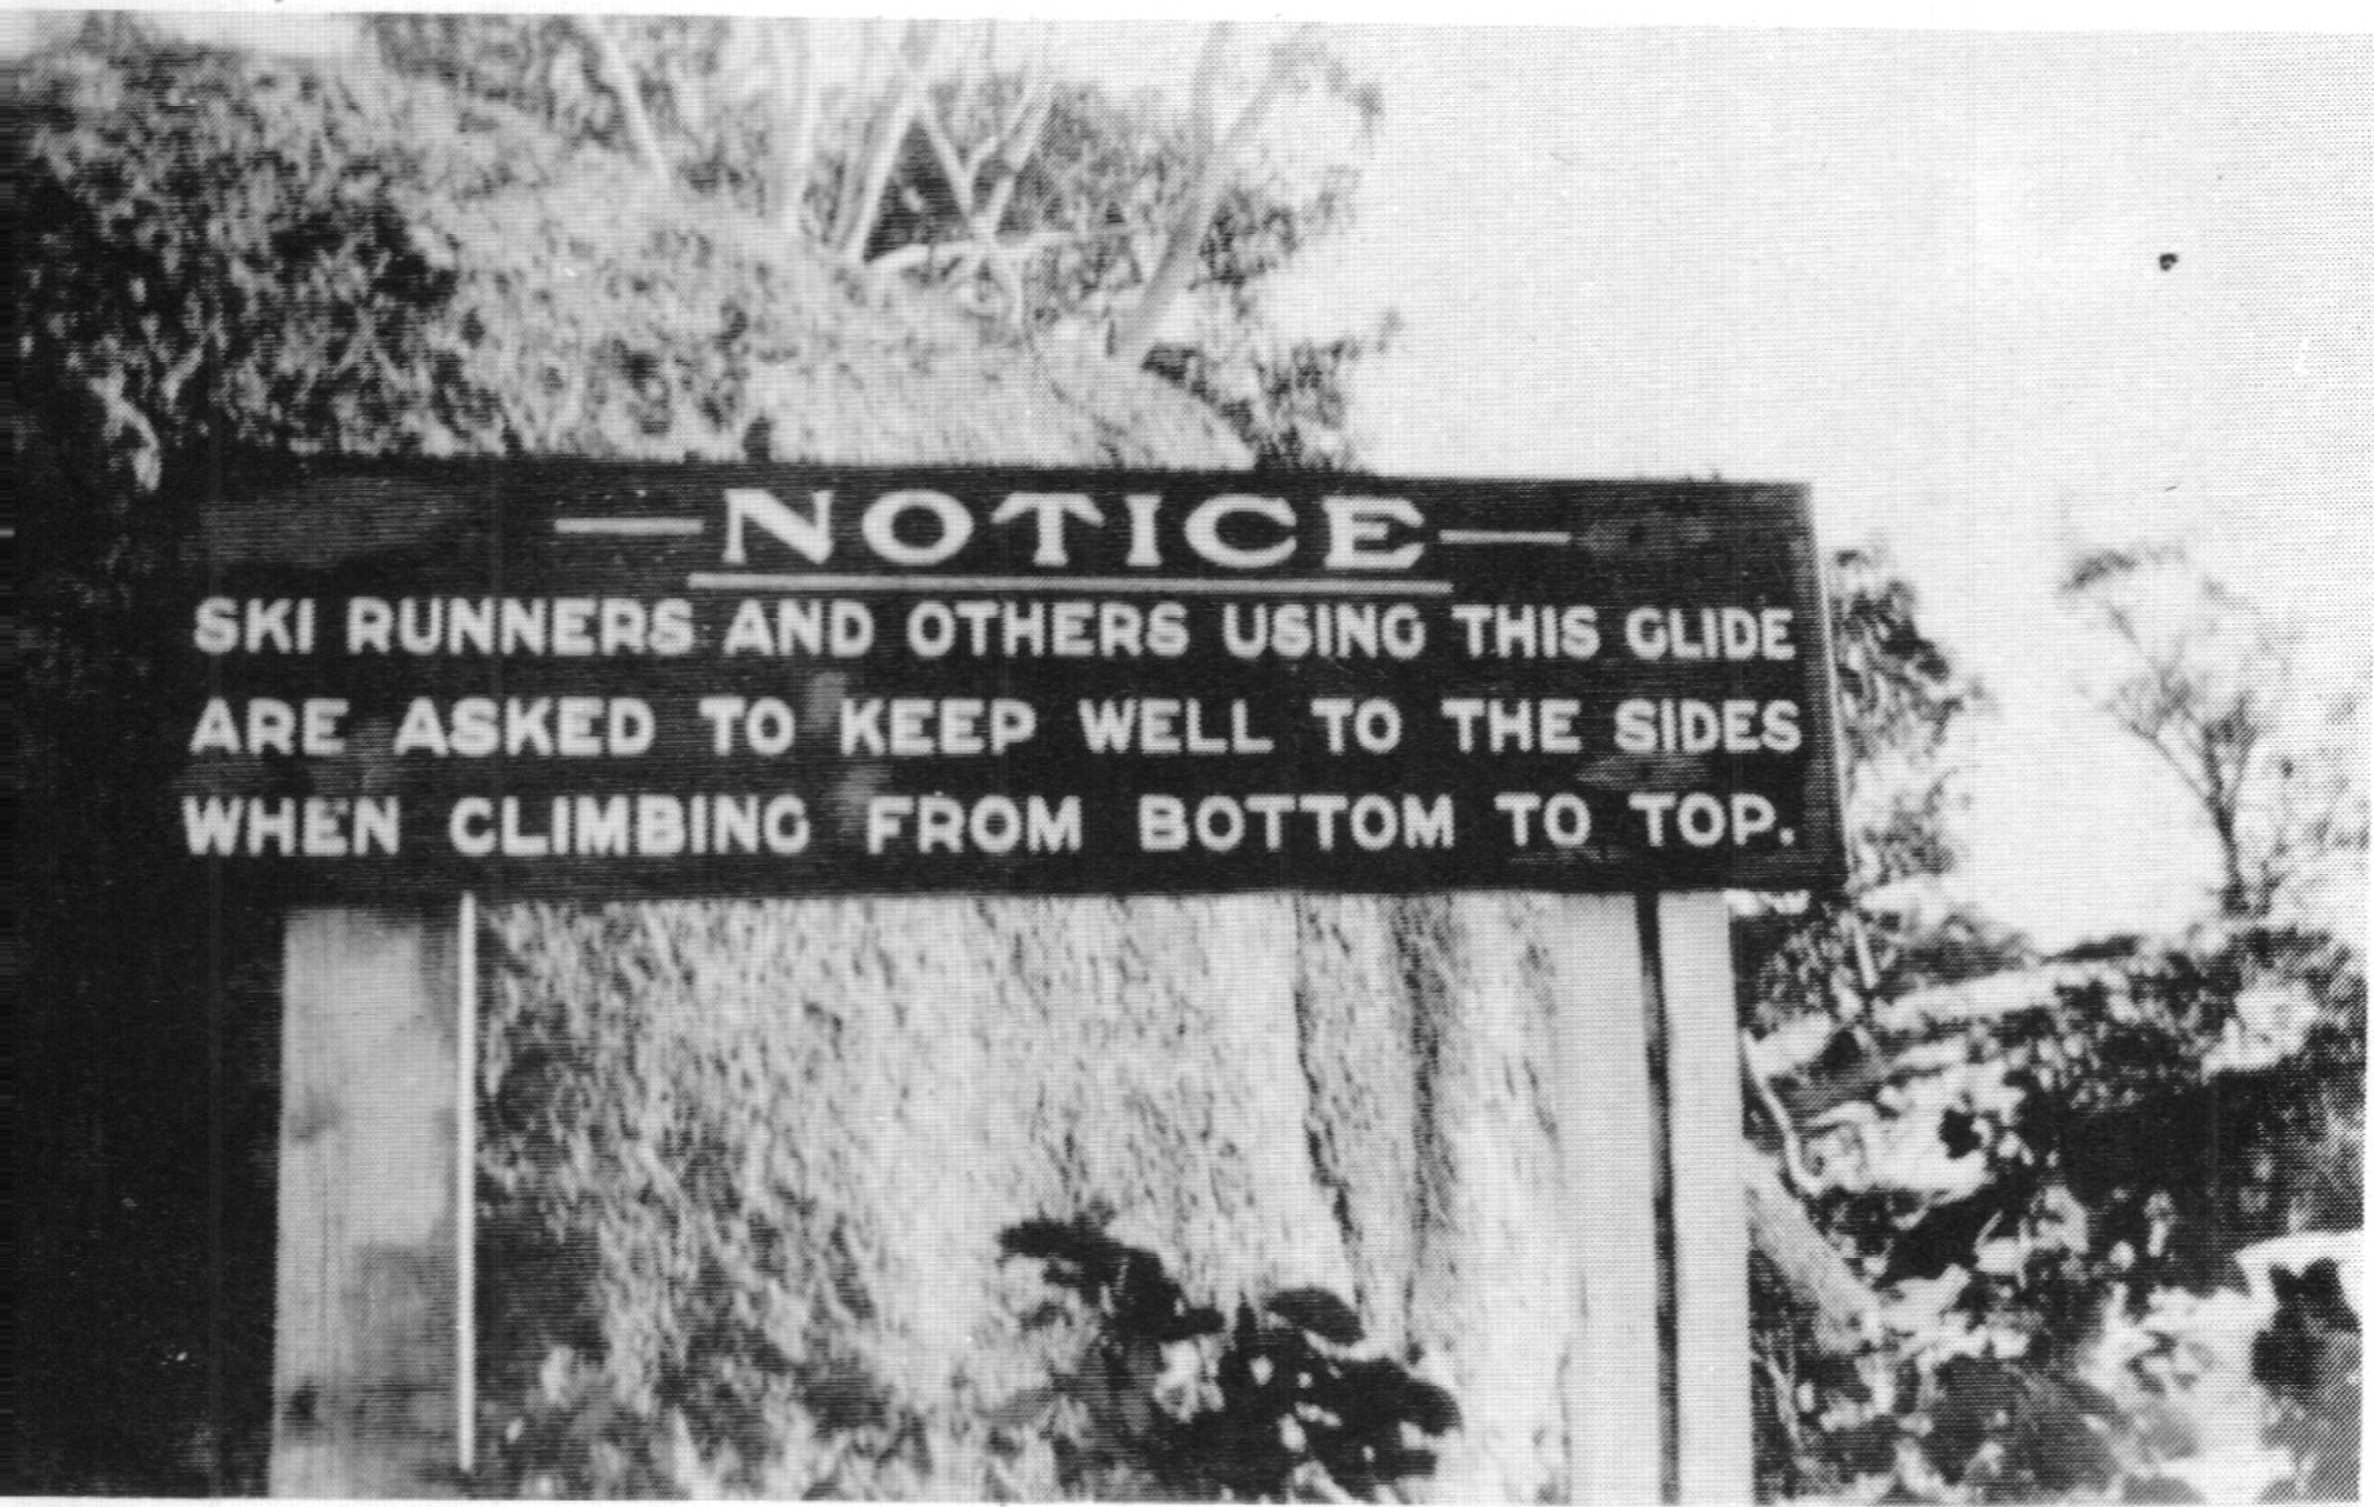 A sign in 1929 urging pedestrians to keep the ski slopes clear.